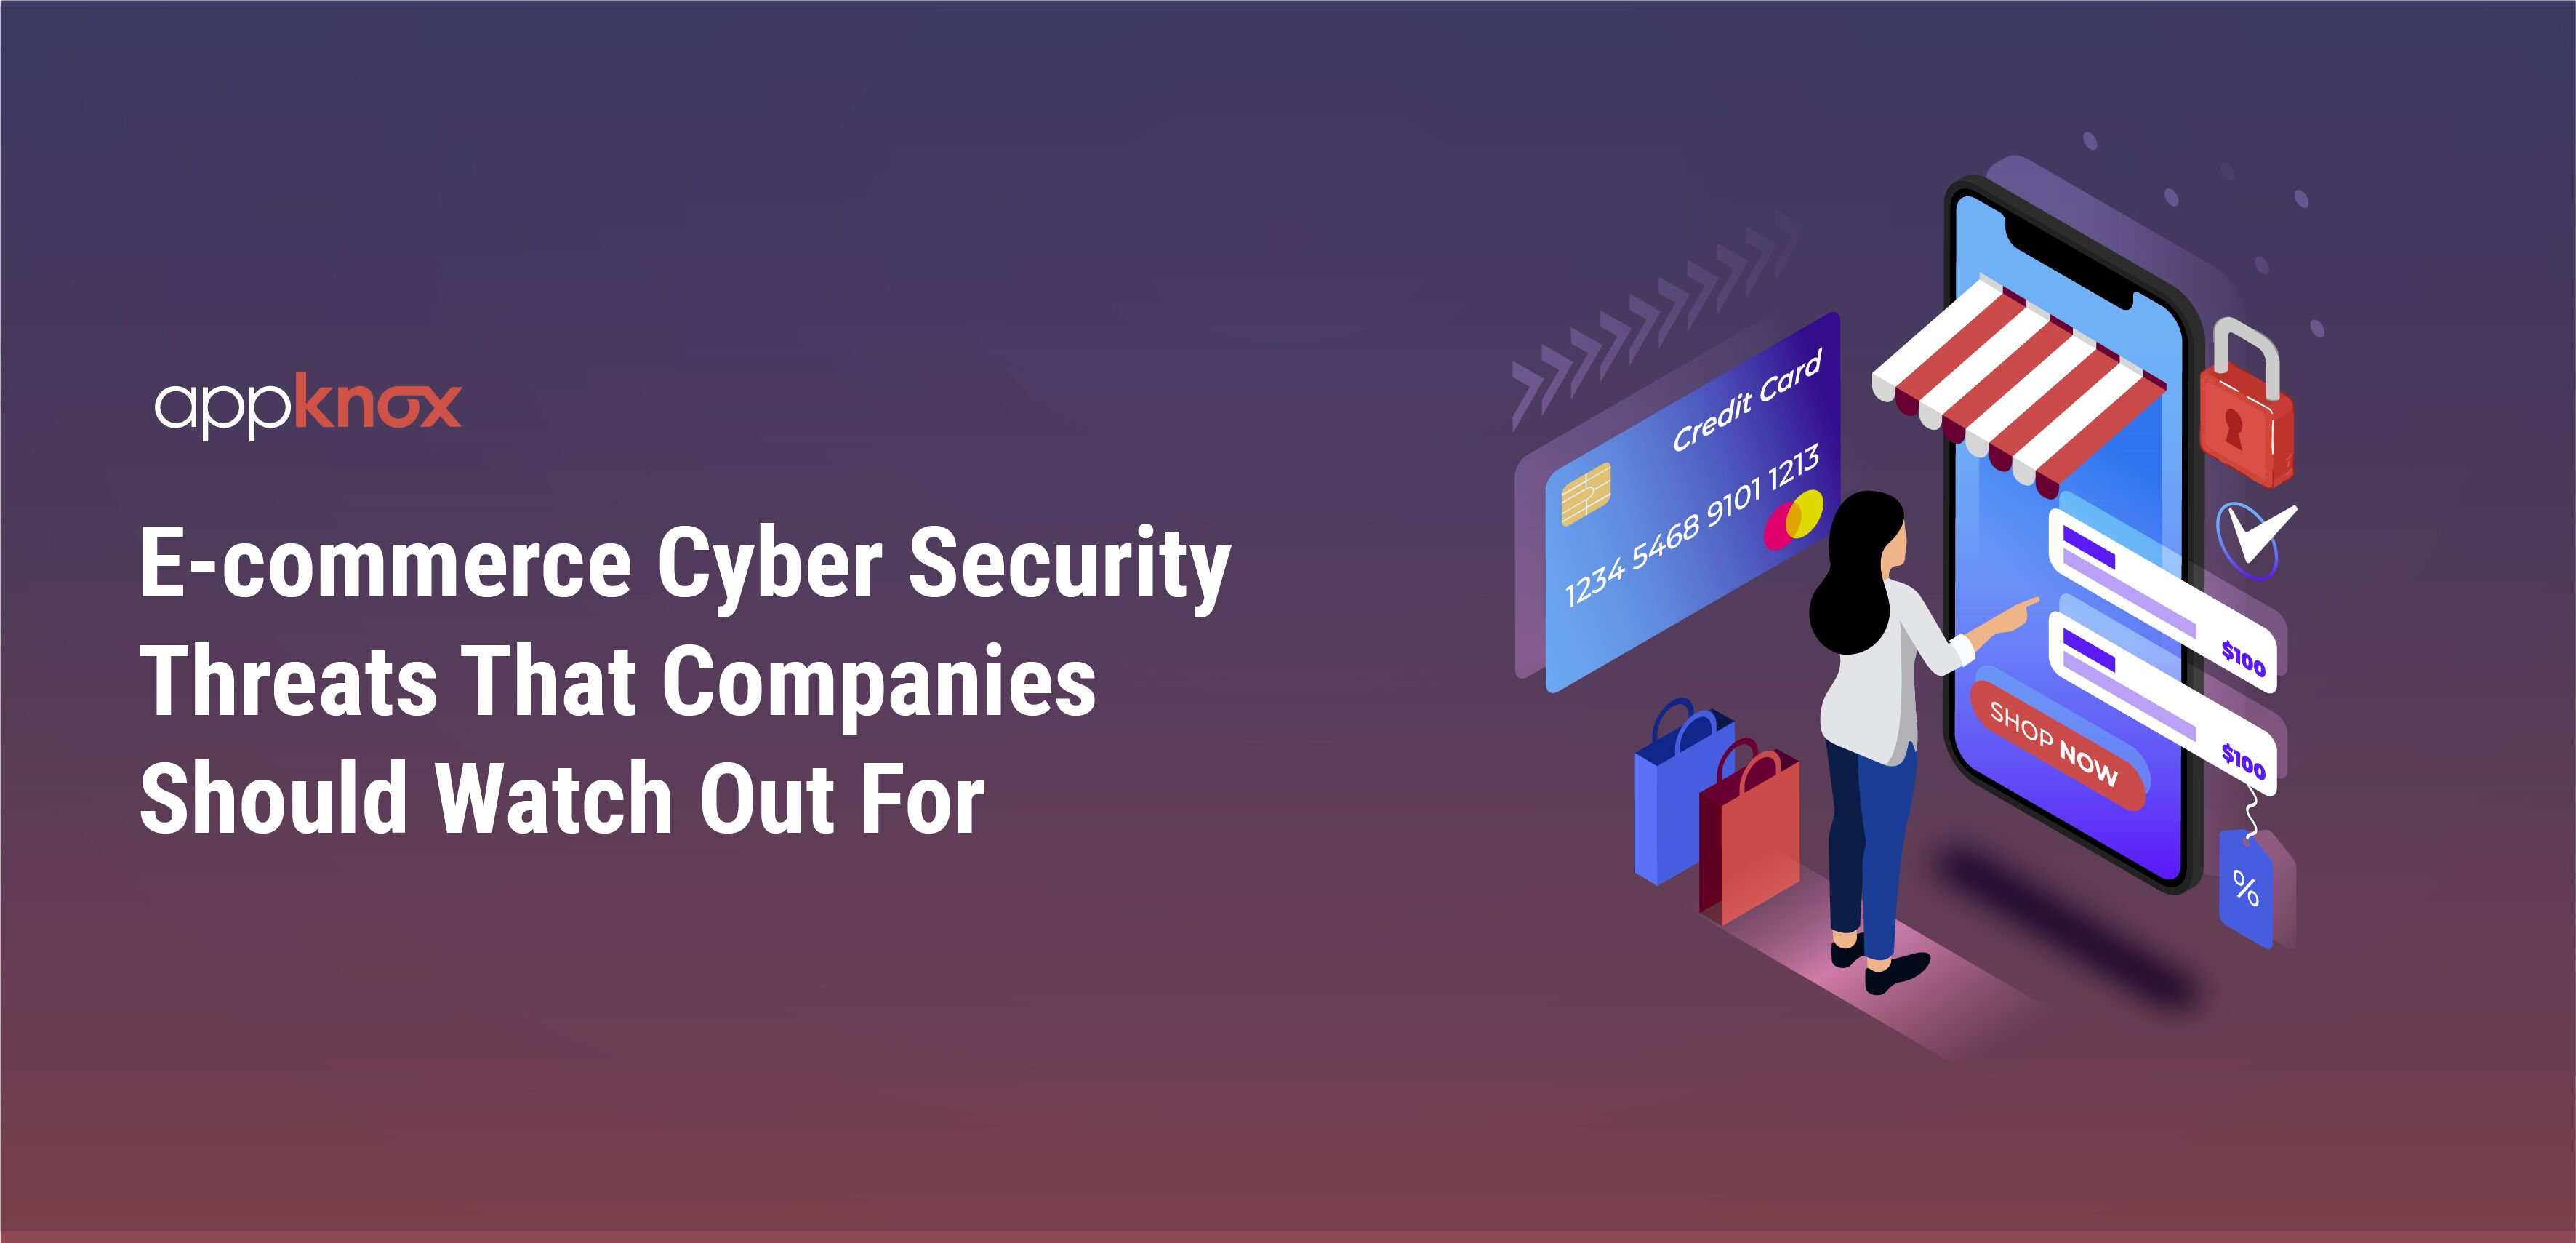 E-commerce Cyber Security Threats That Companies Should Watch Out For